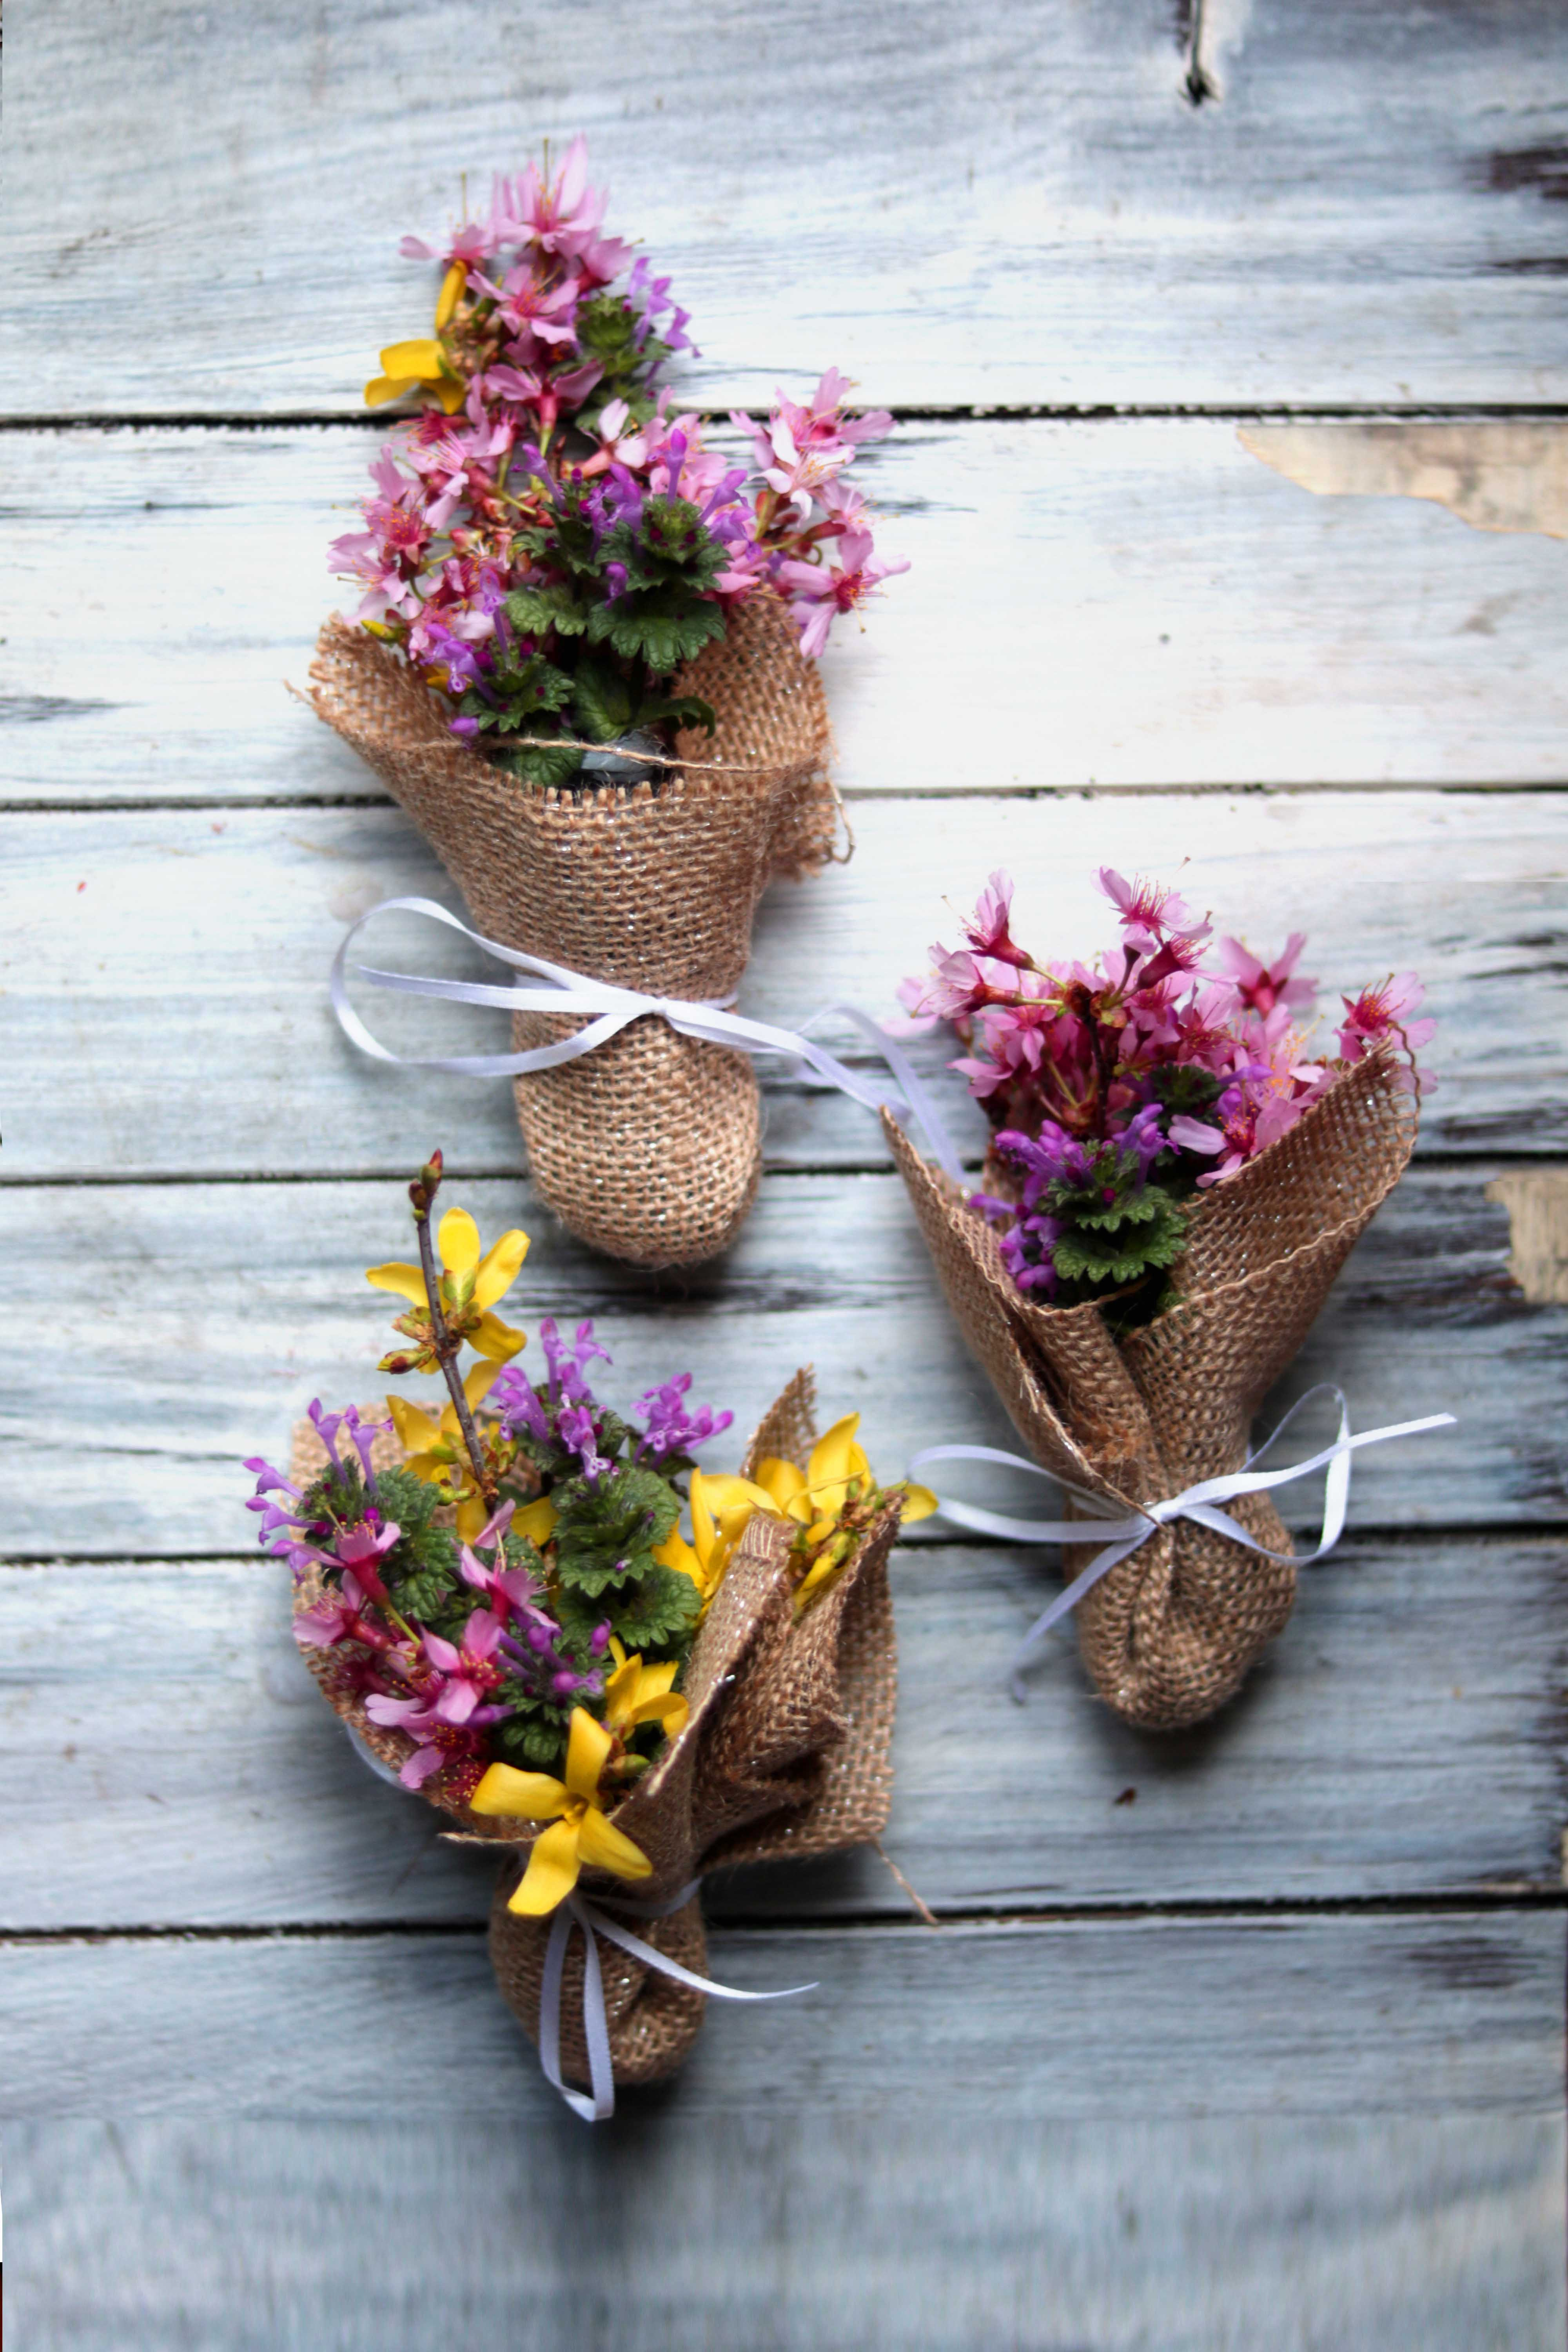 Beautiful! Make mini wildflower bouquets for the spring equinox.